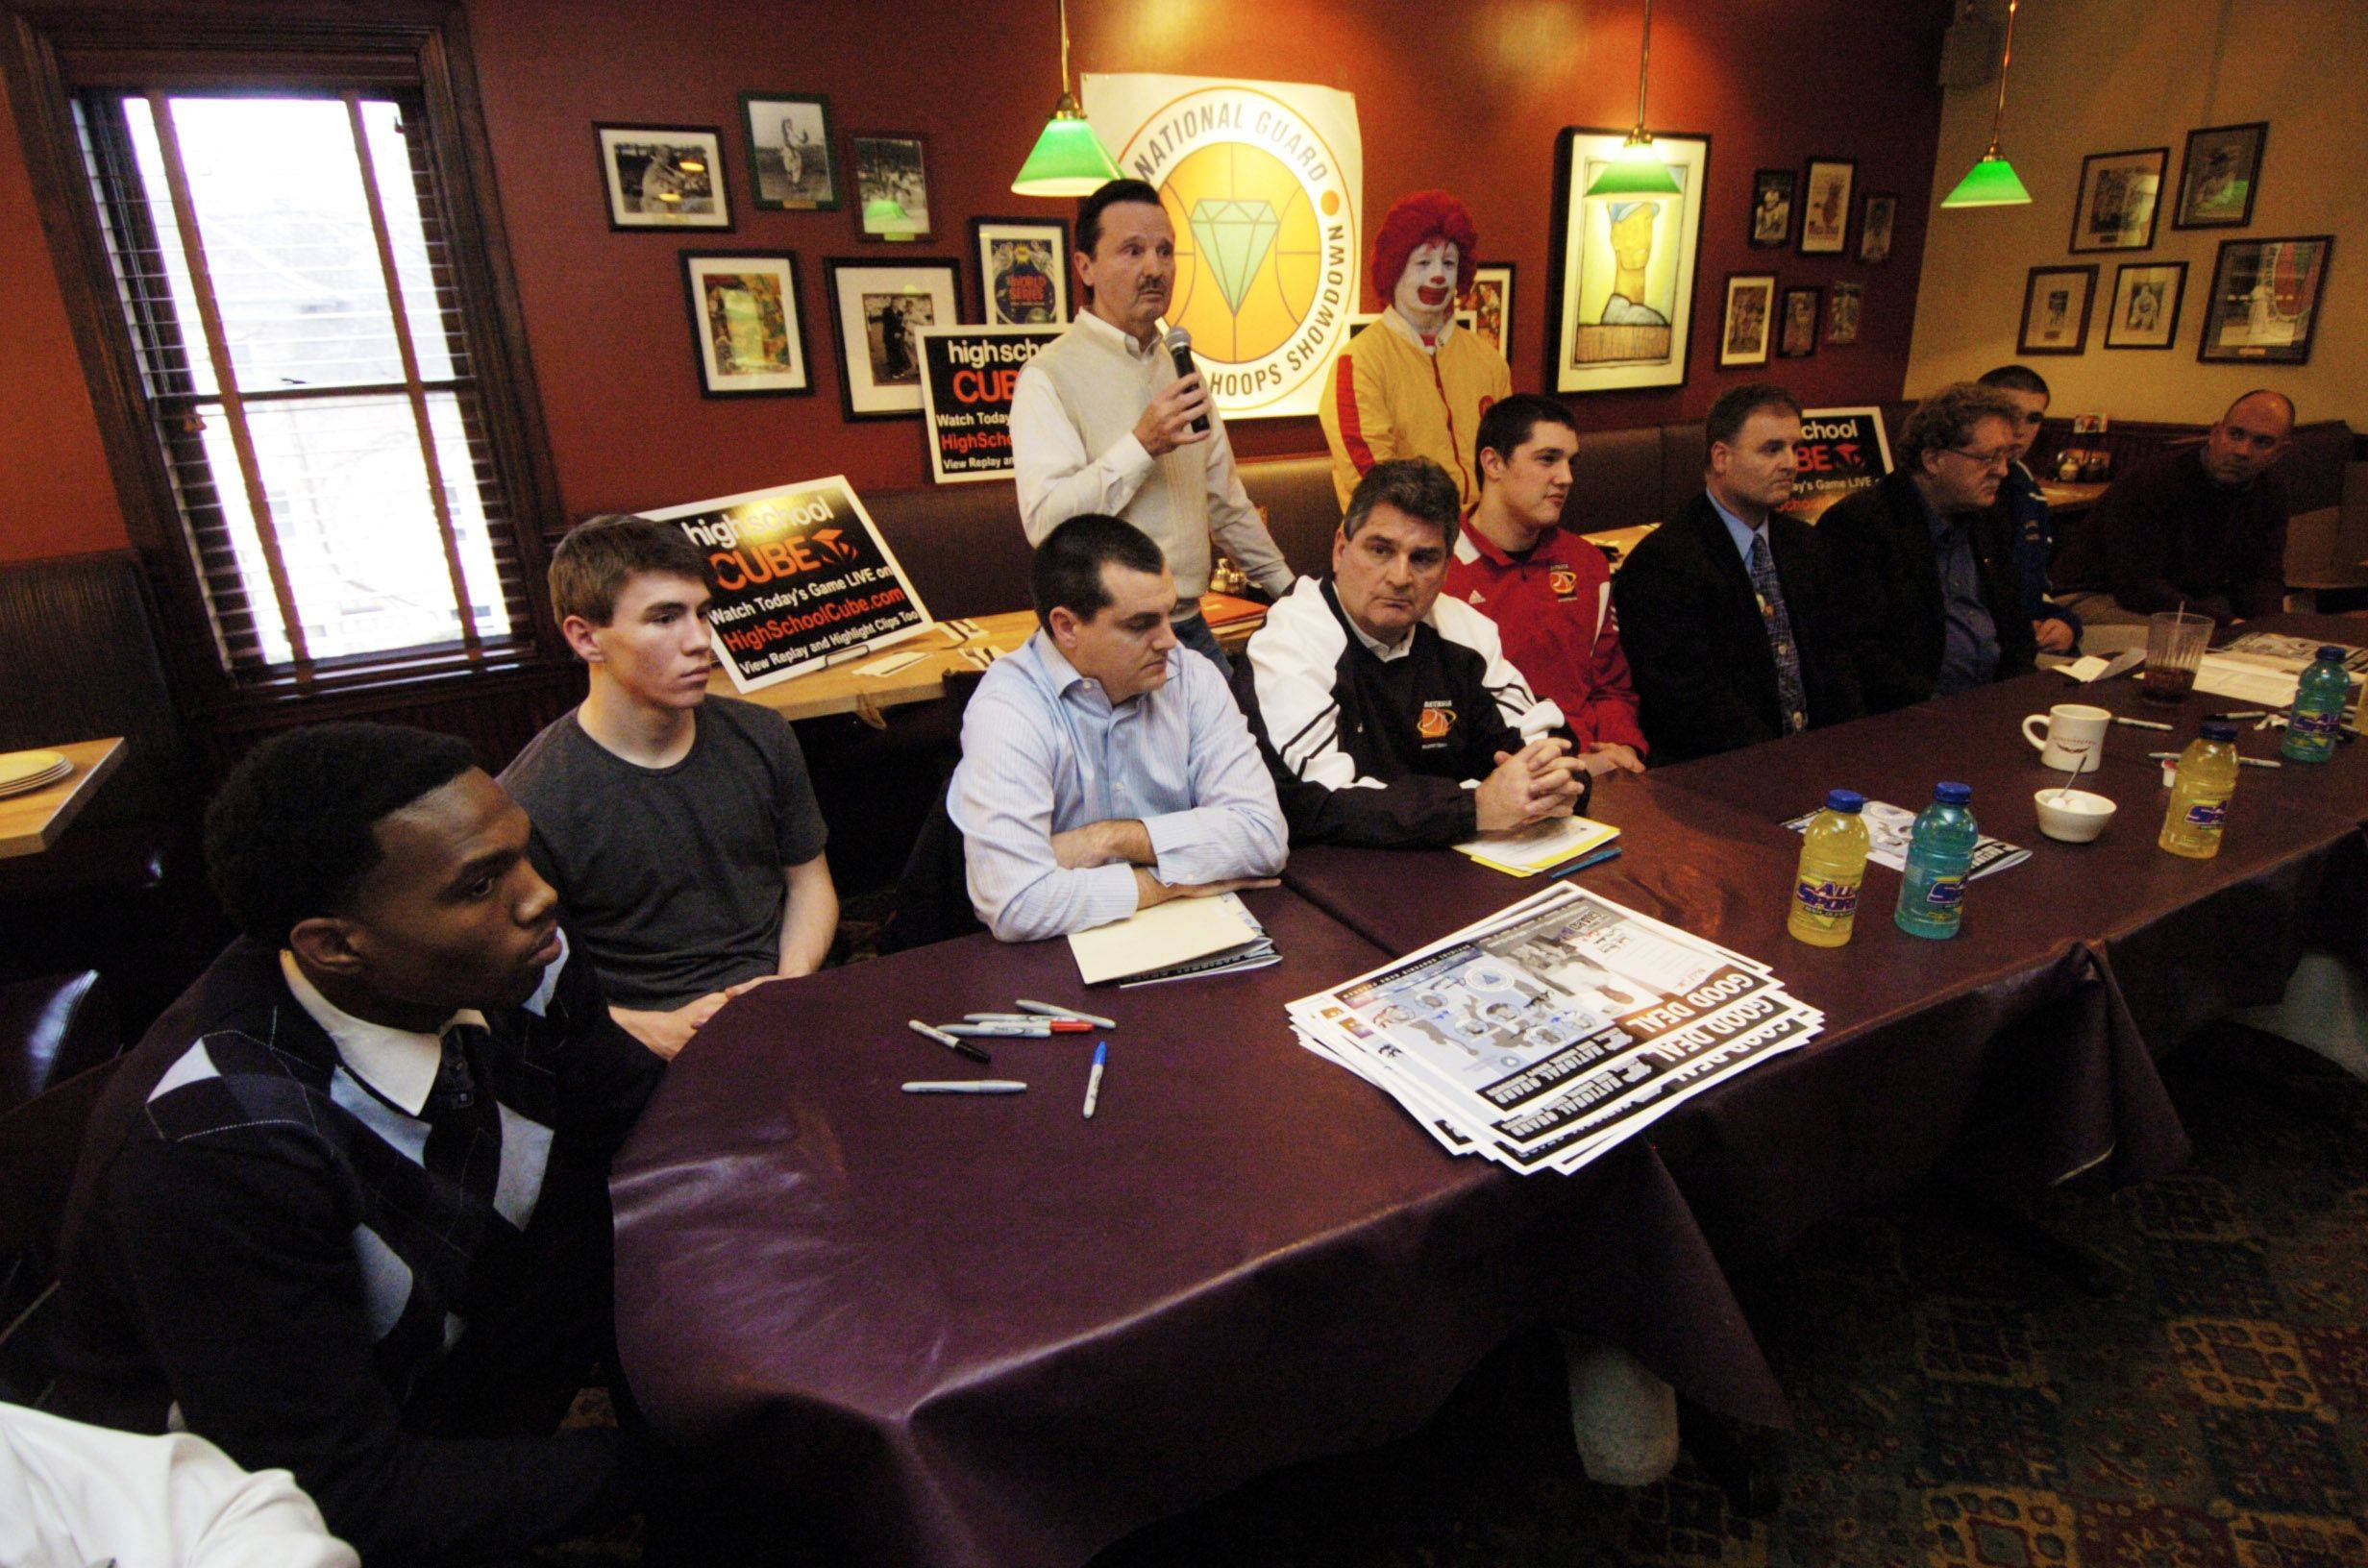 Head coaches and players from participating teams gather during a Hoops Showdown press conference at Lou Malnati's in Schaumburg Tuesday.